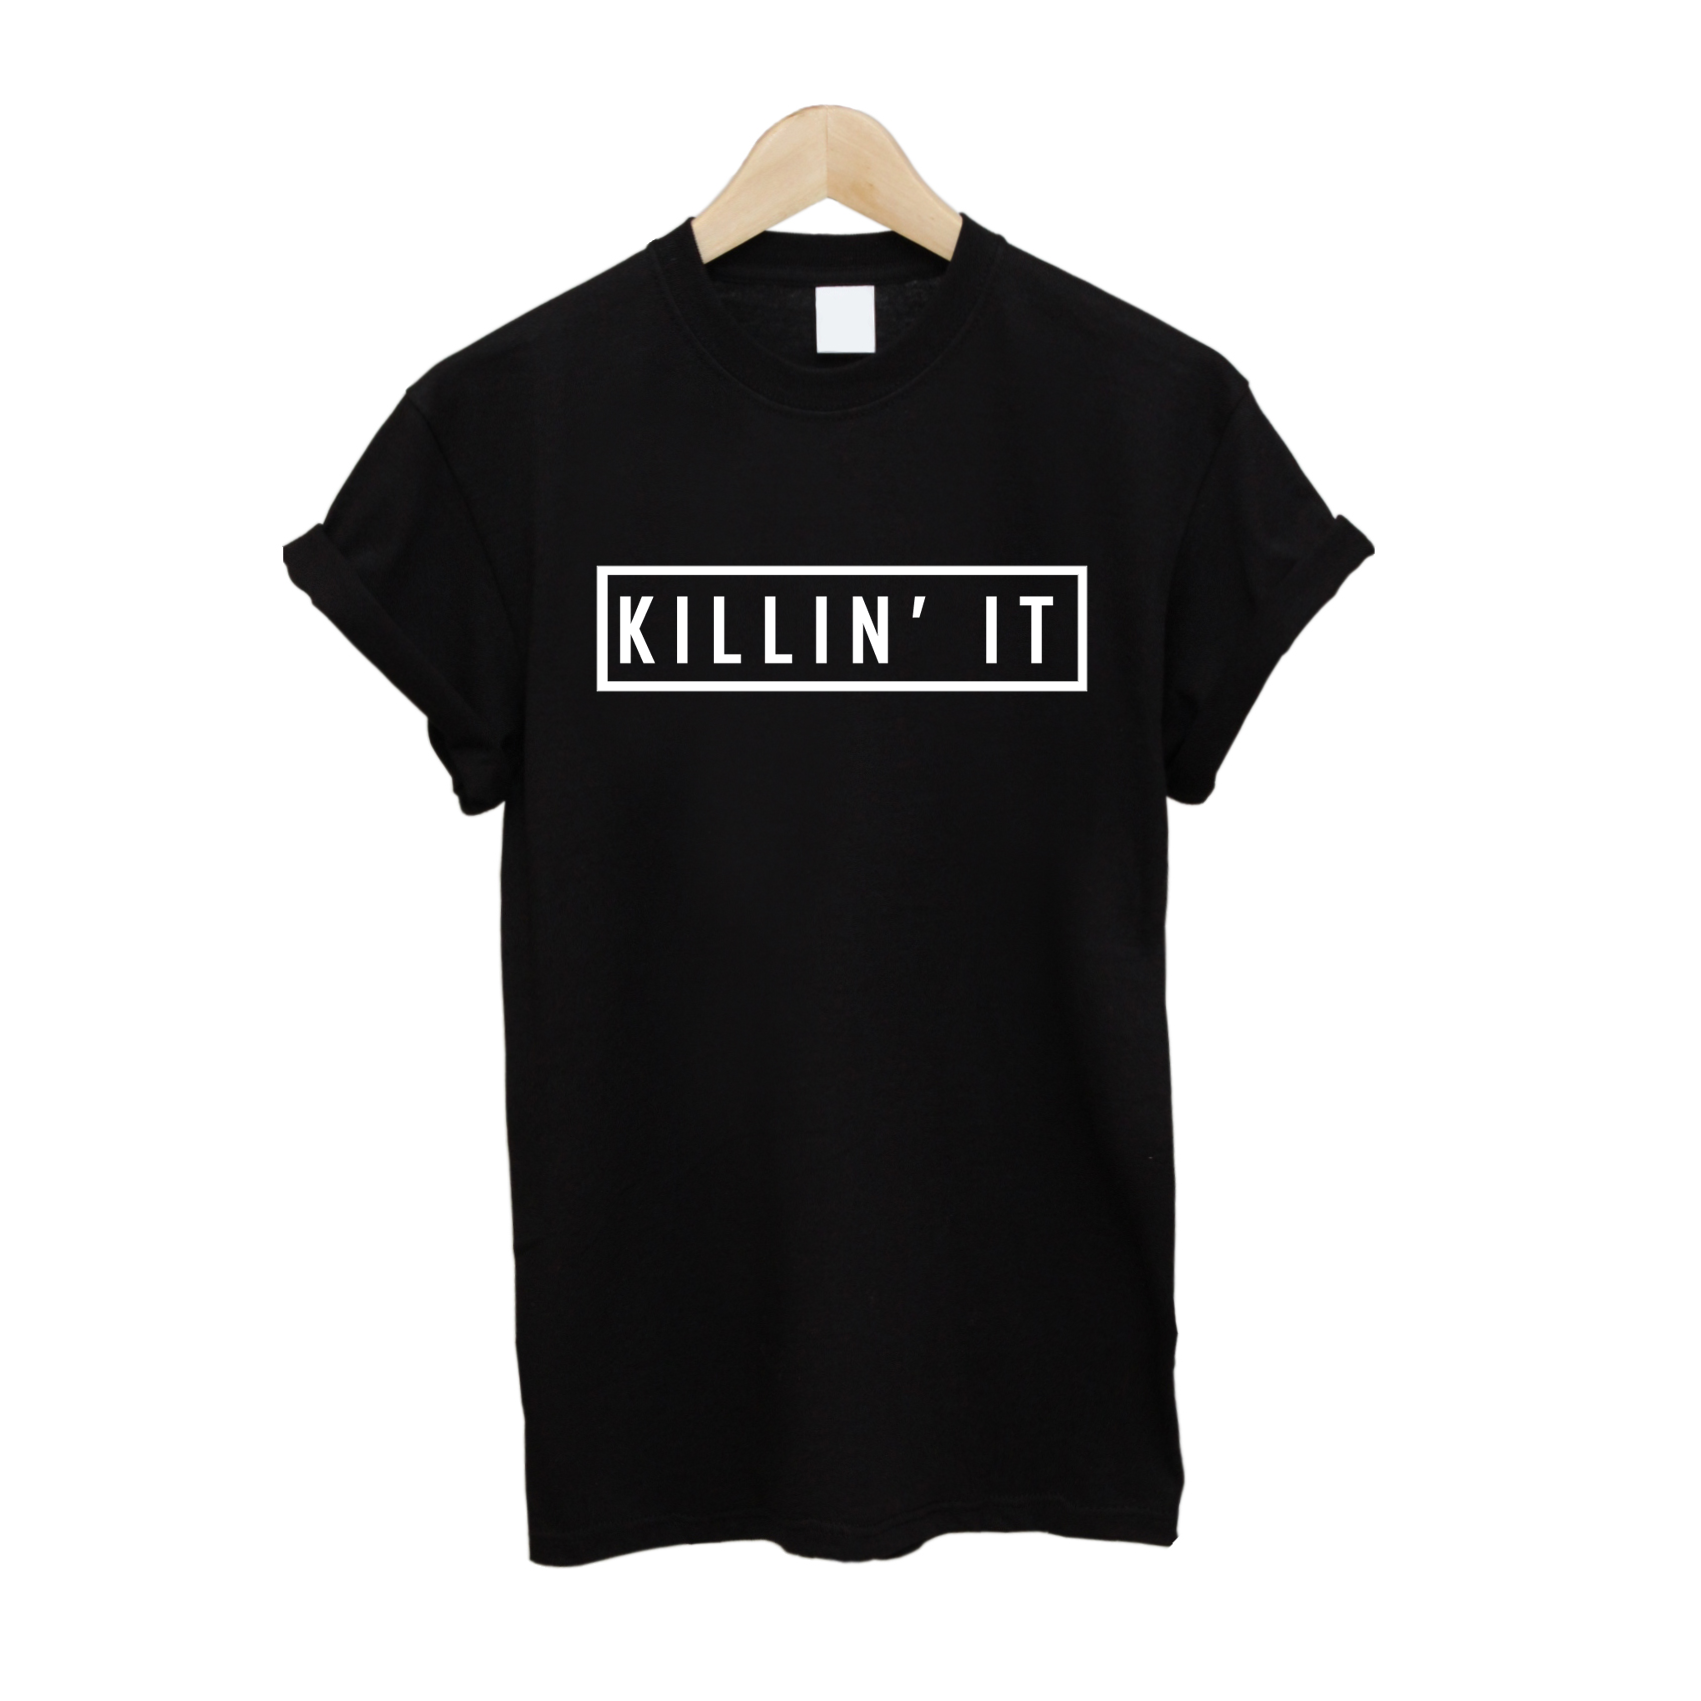 Killin' It T Shirt £10   Free UK Delivery - #TeeIsland